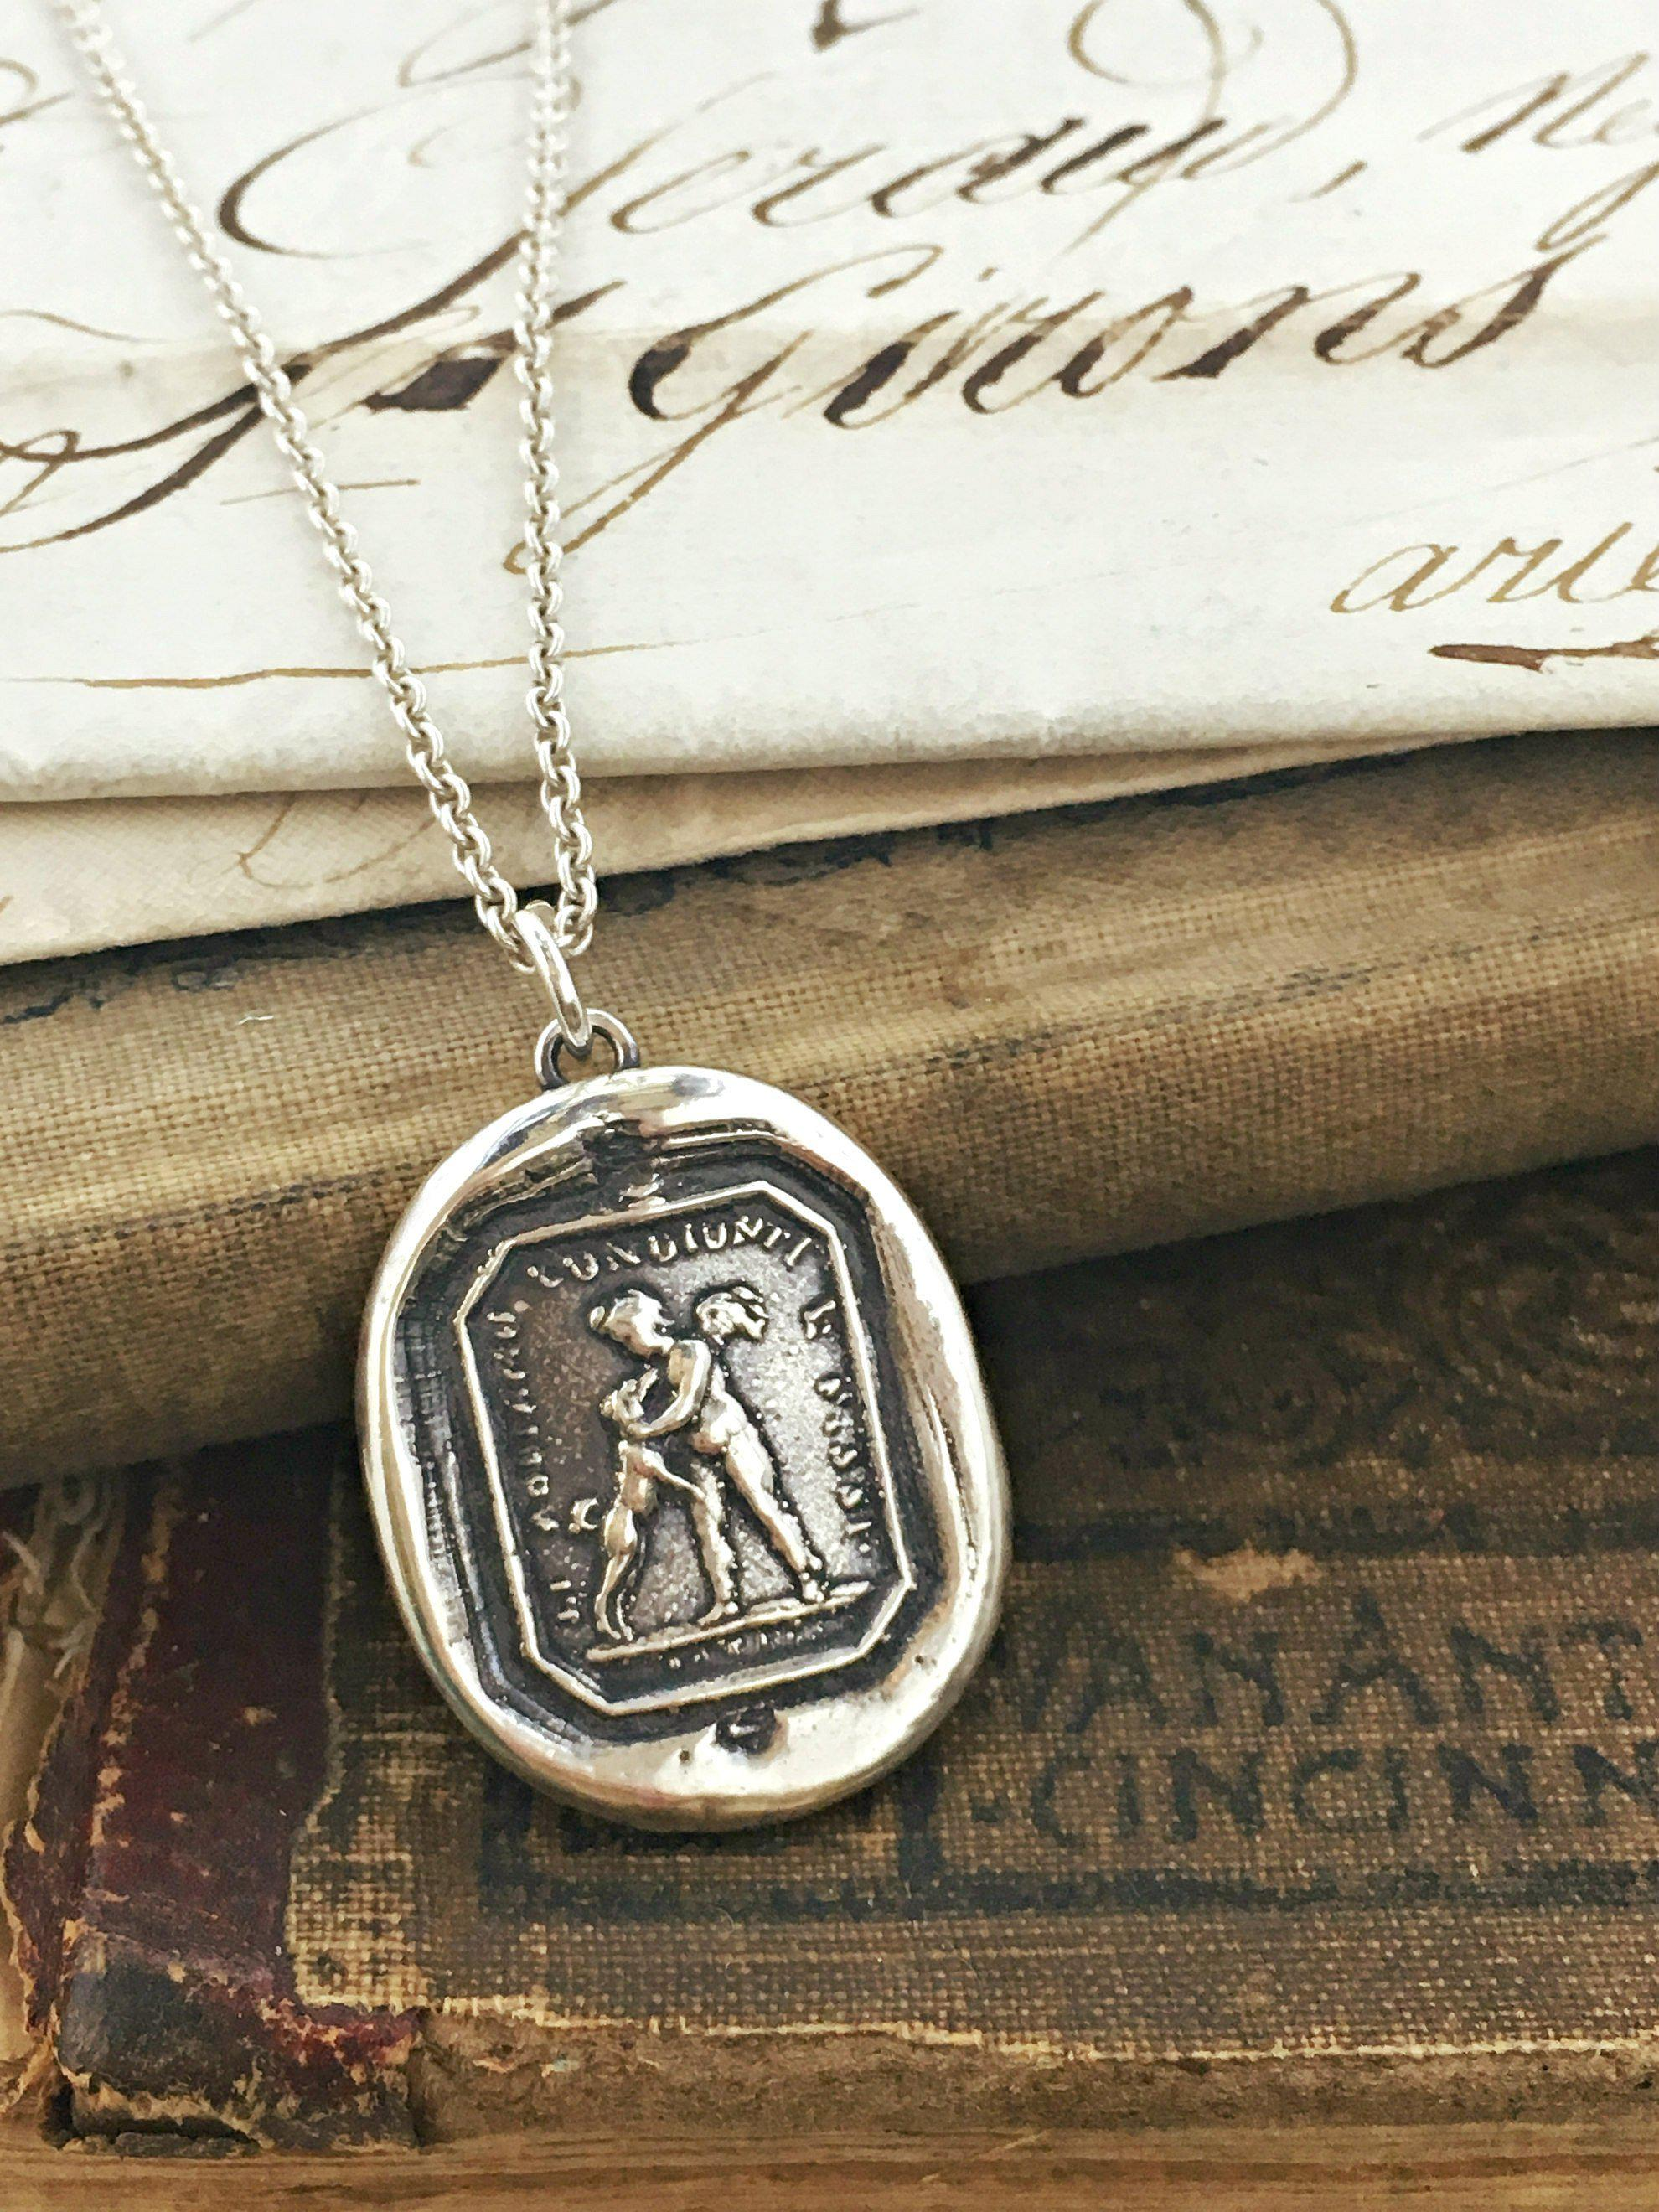 Friends for Life Wax Seal Pendant - Love & Friendship-Shannon Westmeyer Jewelry